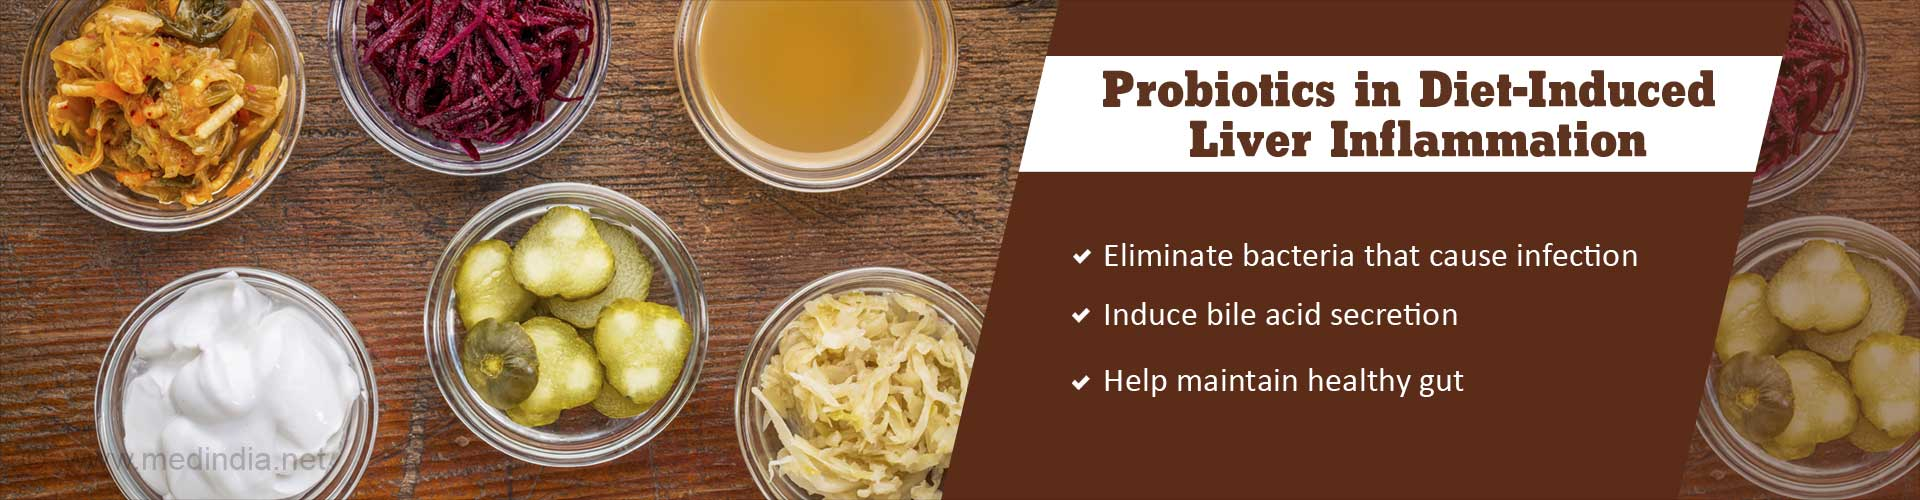 Probiotics Can Help Kick Off Liver Inflammation Due To Fatty Diet